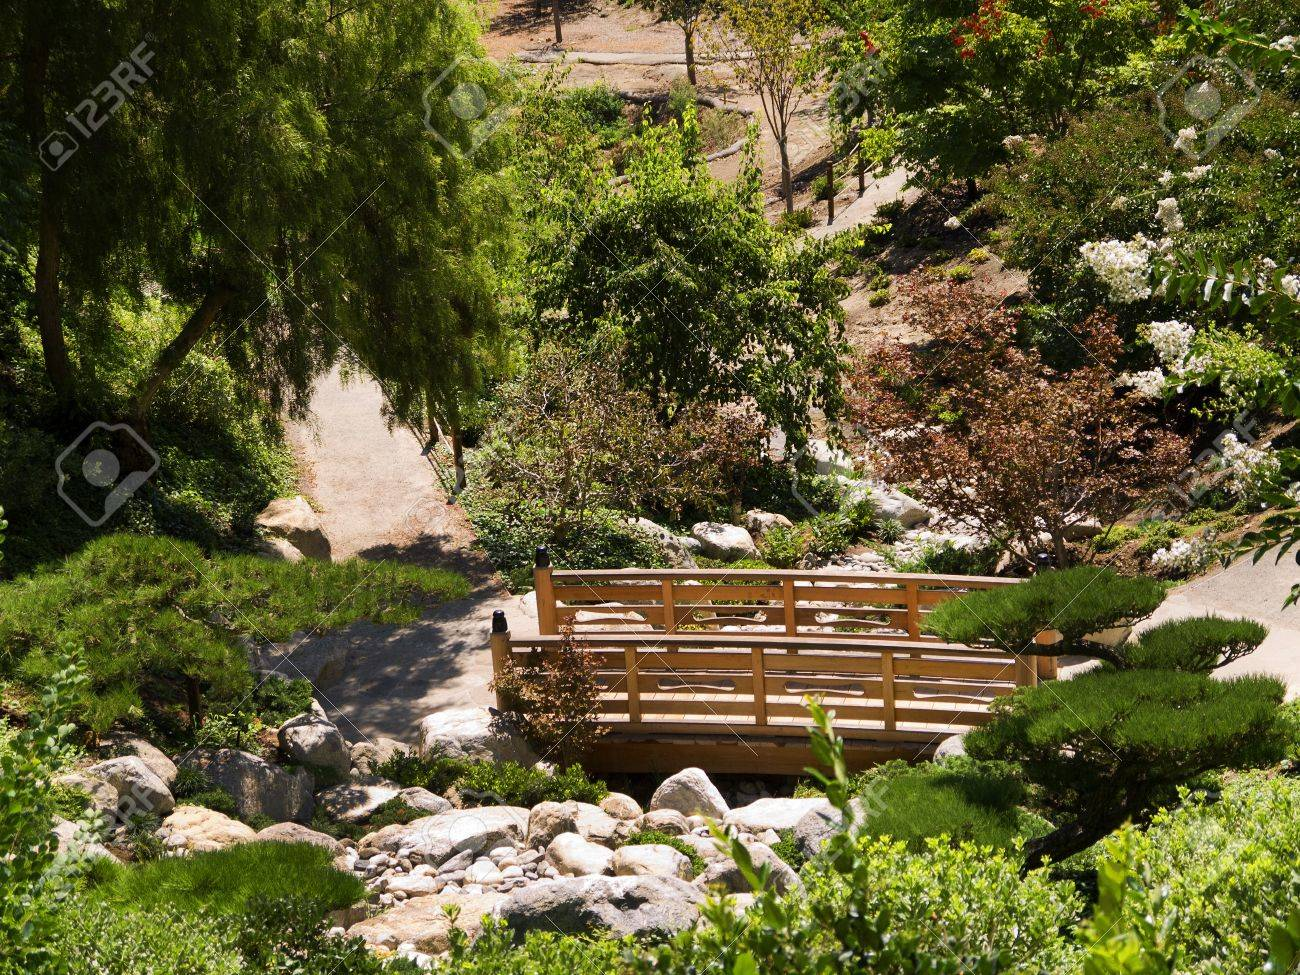 Japanese Garden In Balboa Park, San Diego, California USA Stock ...